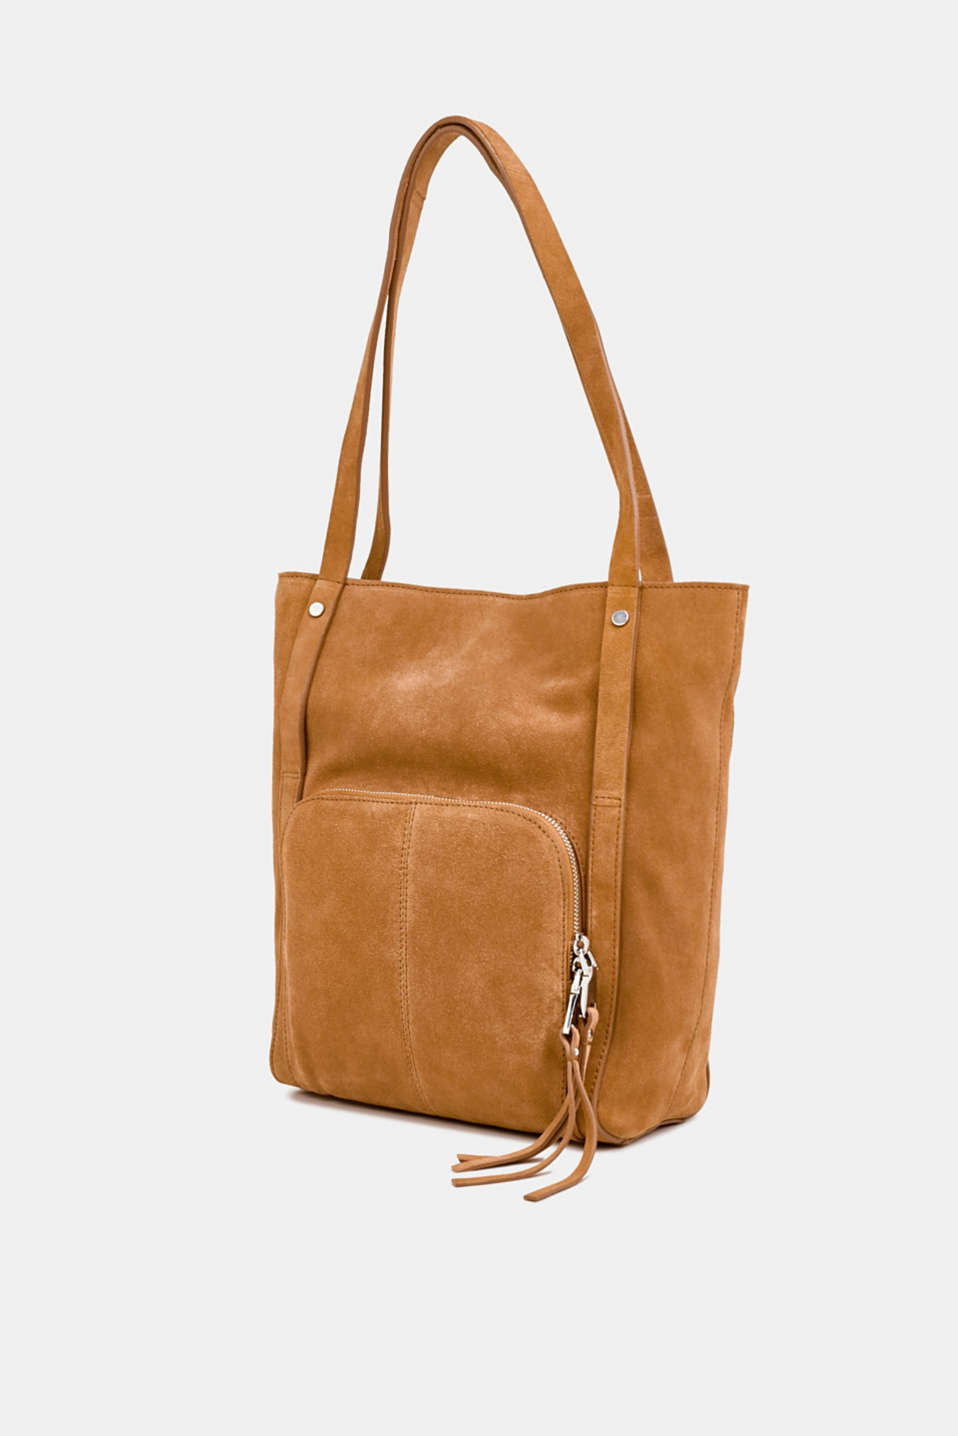 Leather tote bag, RUST BROWN, detail image number 2